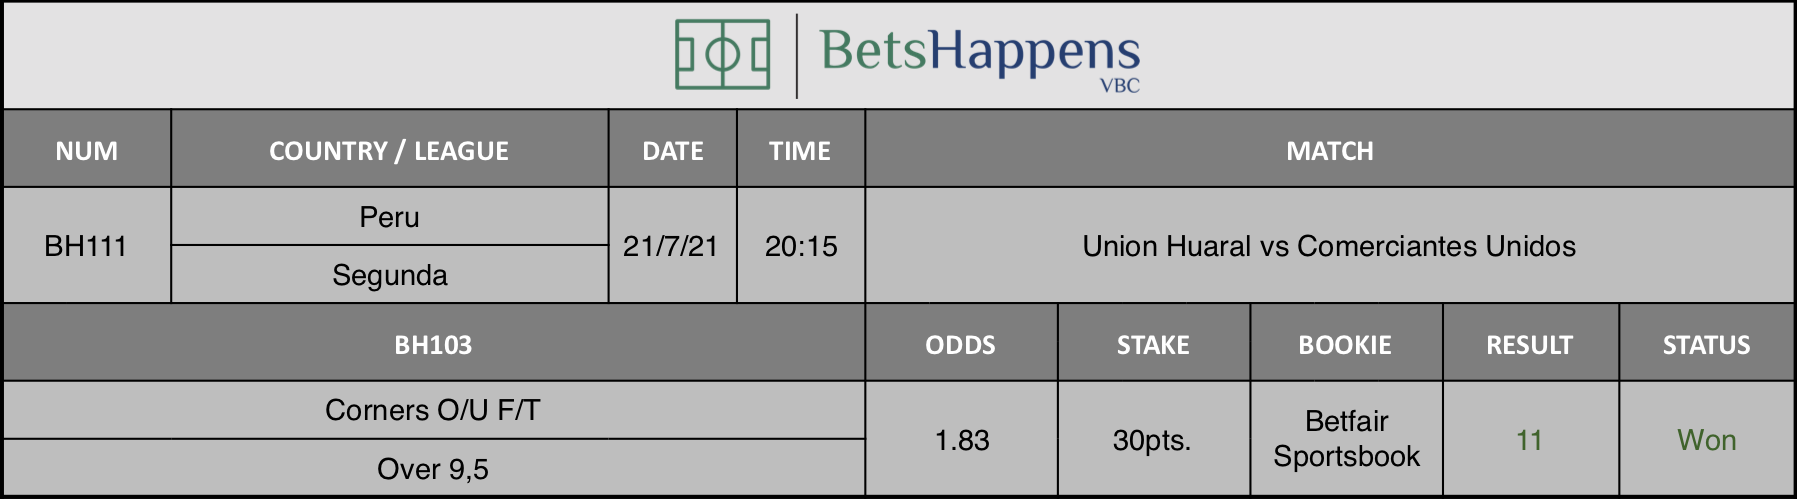 Results of our advice for the Union Huaral vs Comerciantes Unidos match in which Corners O/U F/T Over 9,5 is recommended.